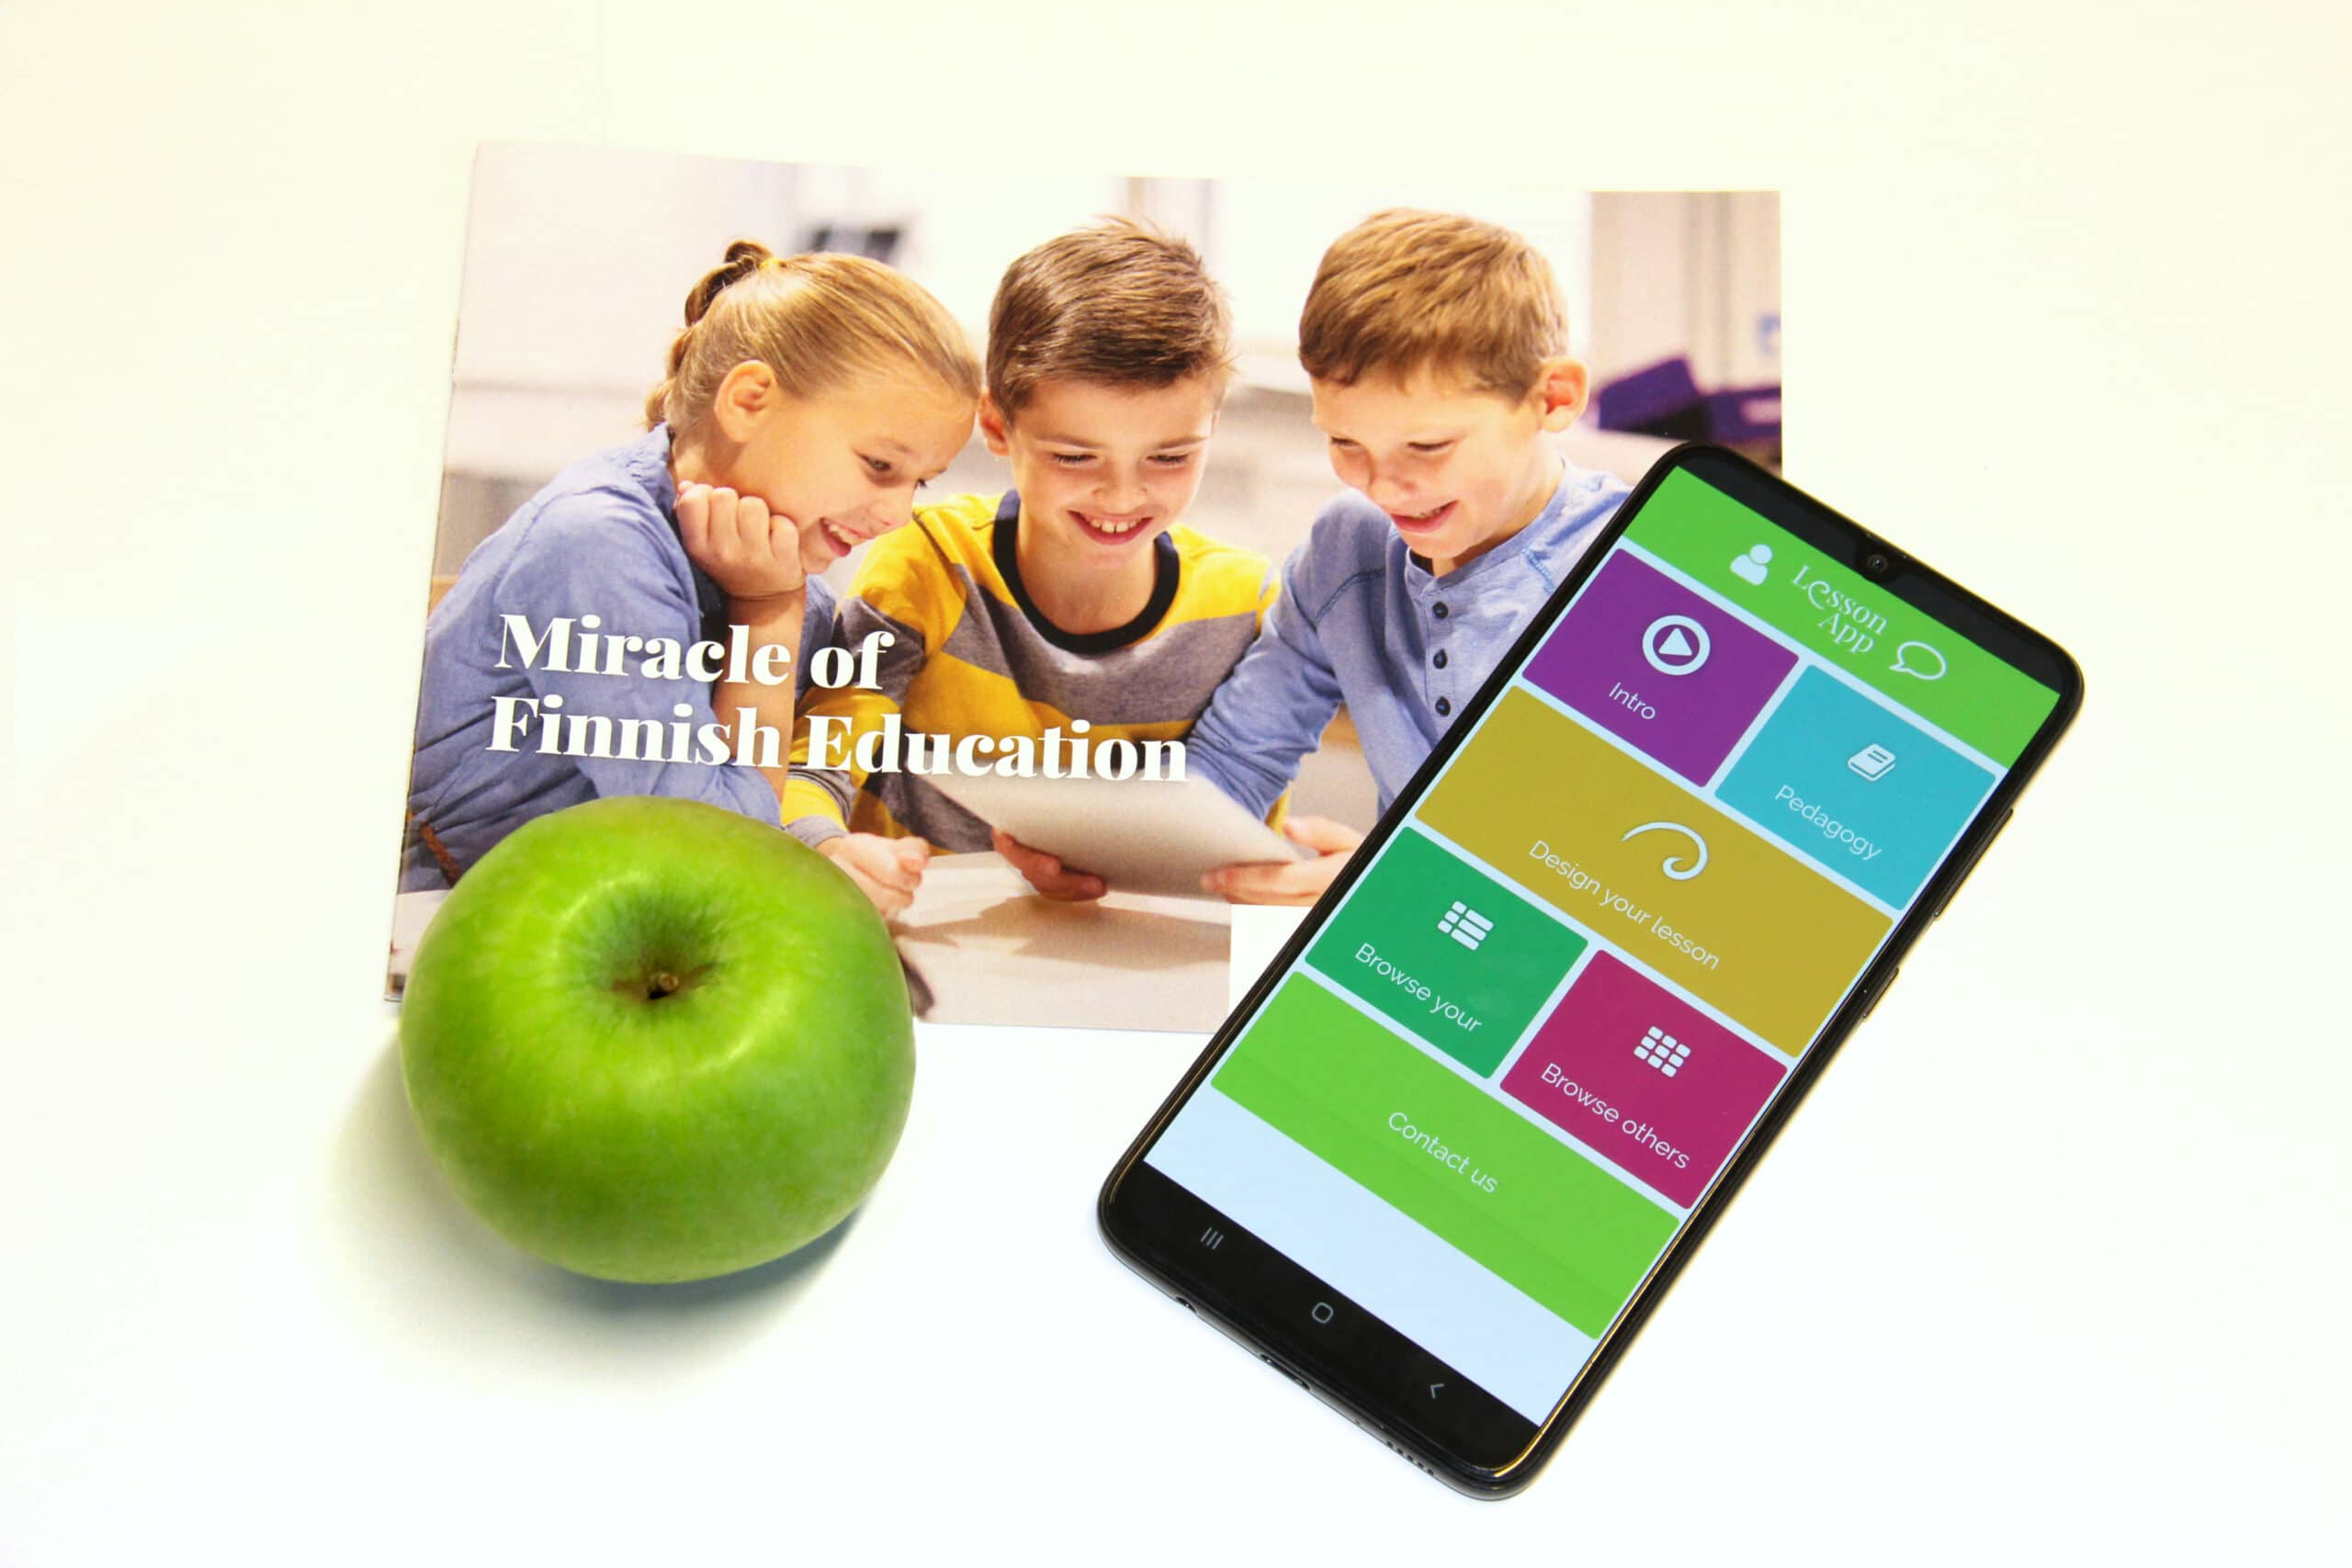 LessonApp herramienta para planear clases para docentes LessonApp a tool to plan lessons